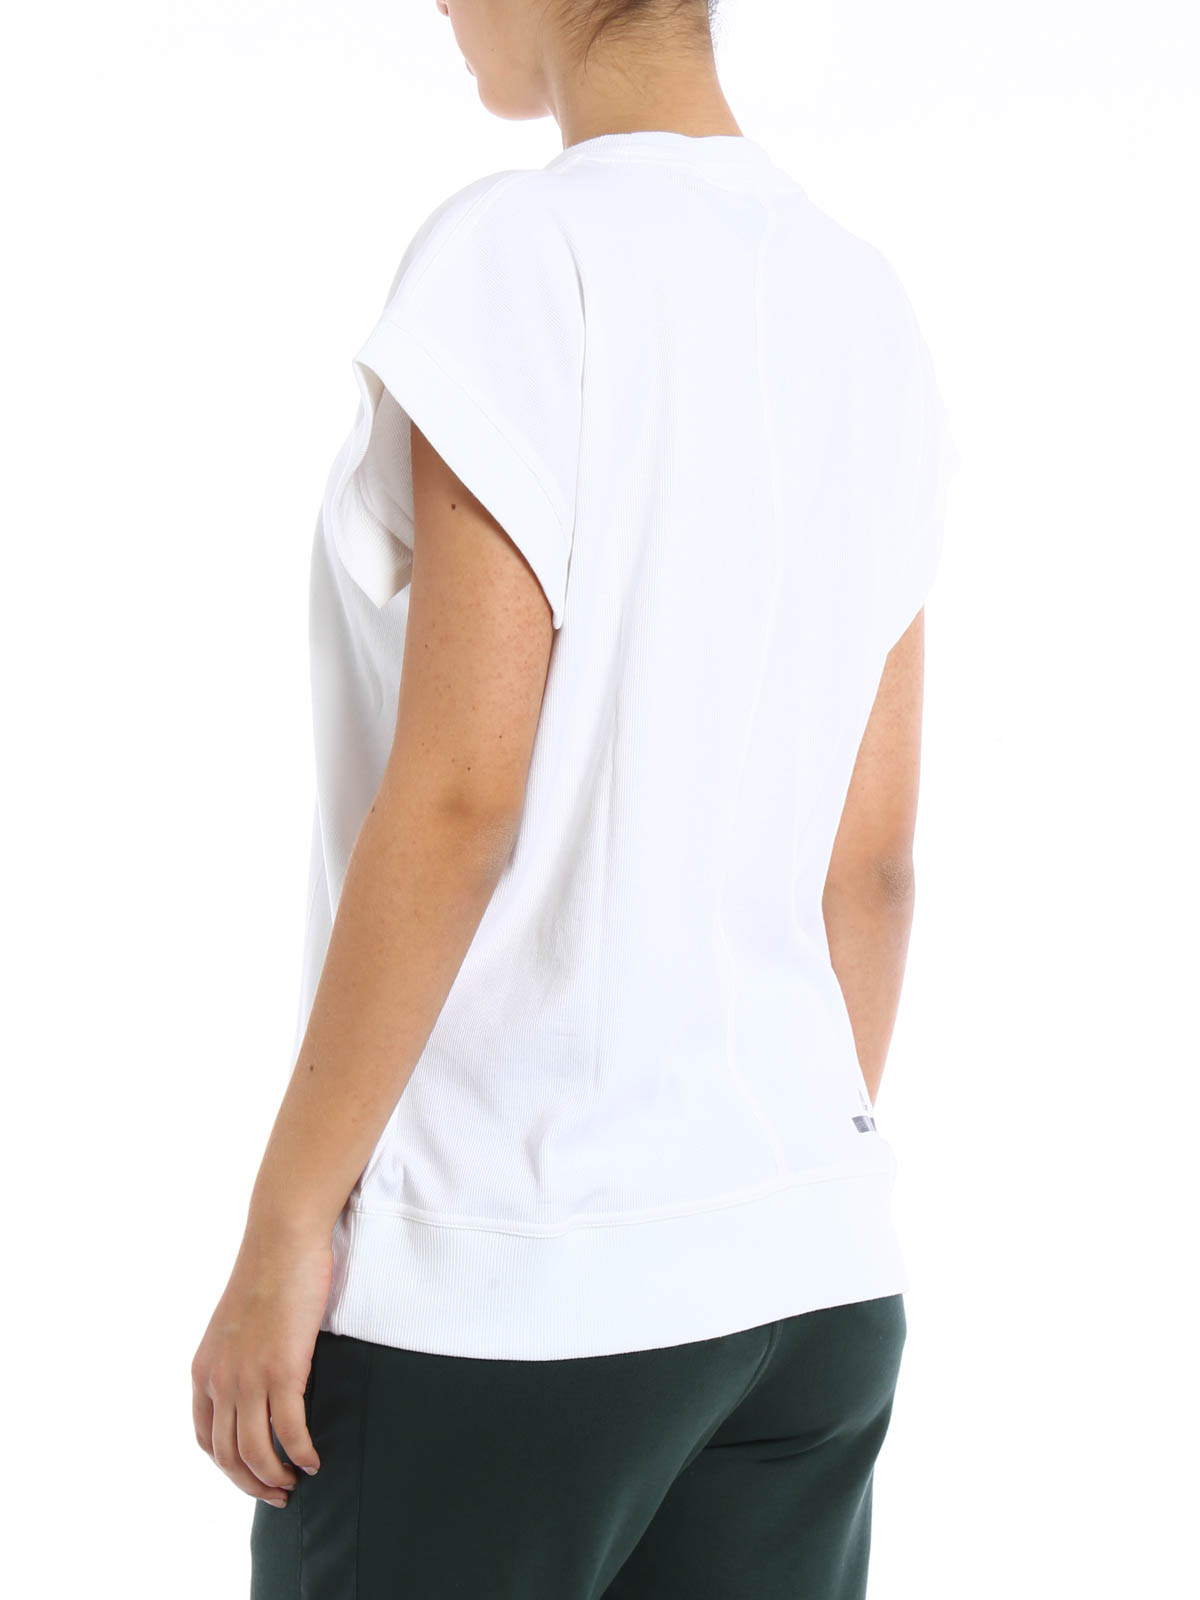 Blanca Camiseta By Adidas Para Mujer Camisetas Stella Mccartney fb76gy